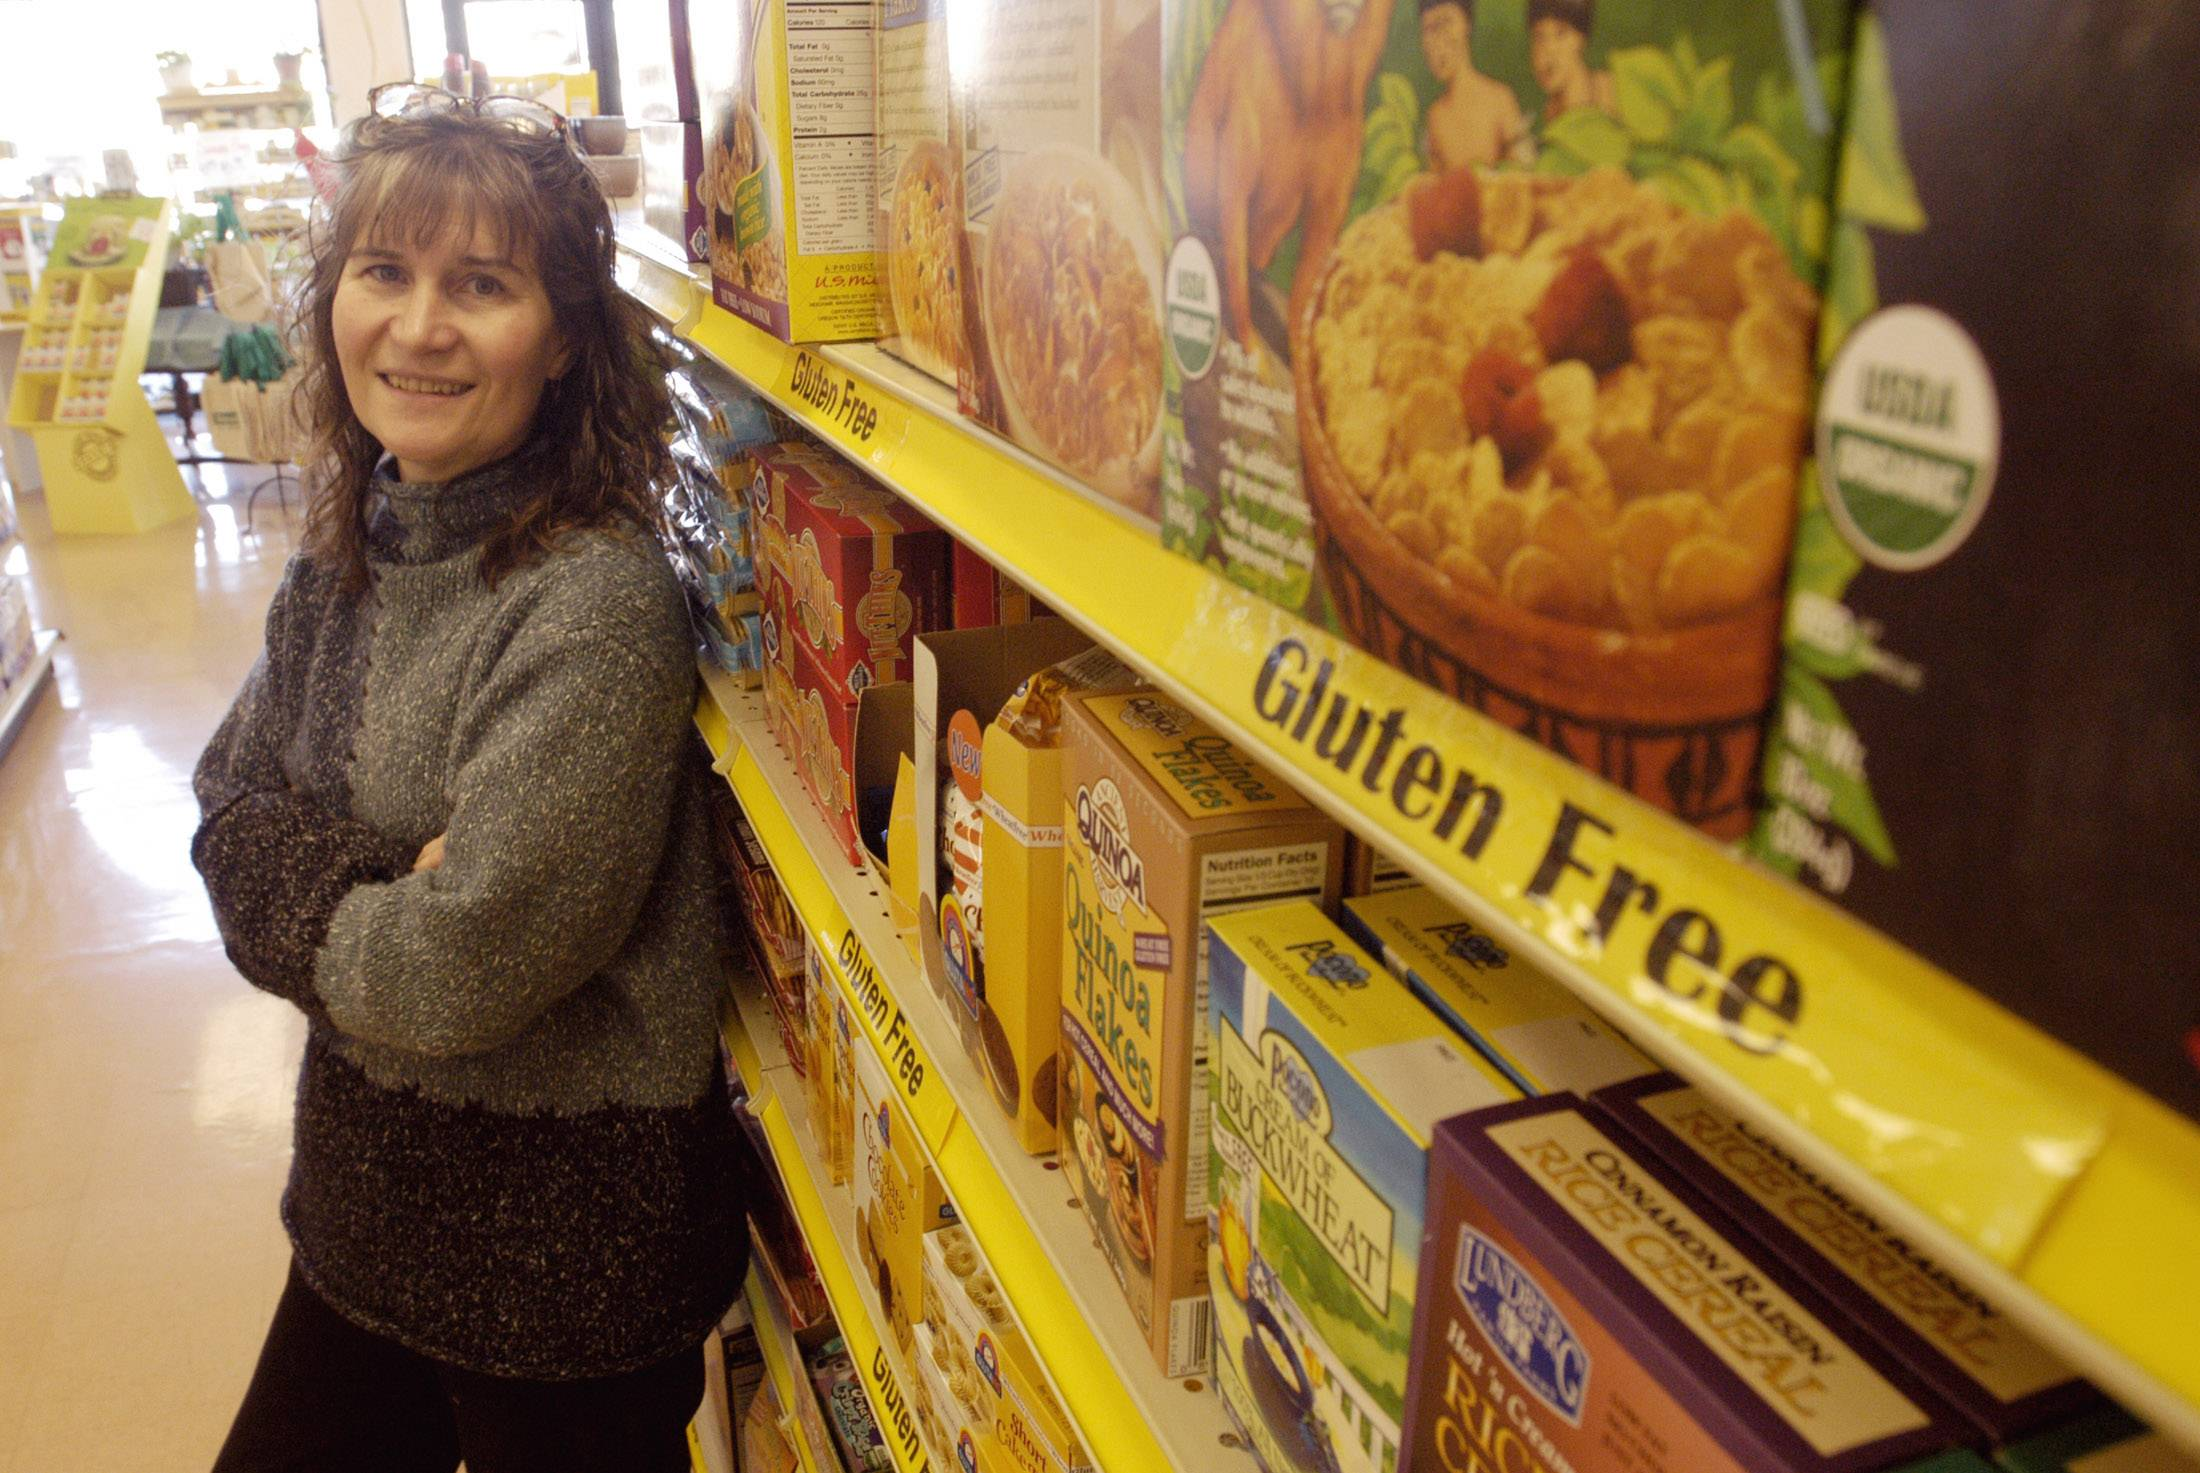 JR Carmany is an owner of Soup to Nuts Alternative Grocery in Geneva, which is celebrating its 35th anniversary with an open house Saturday, May 3.